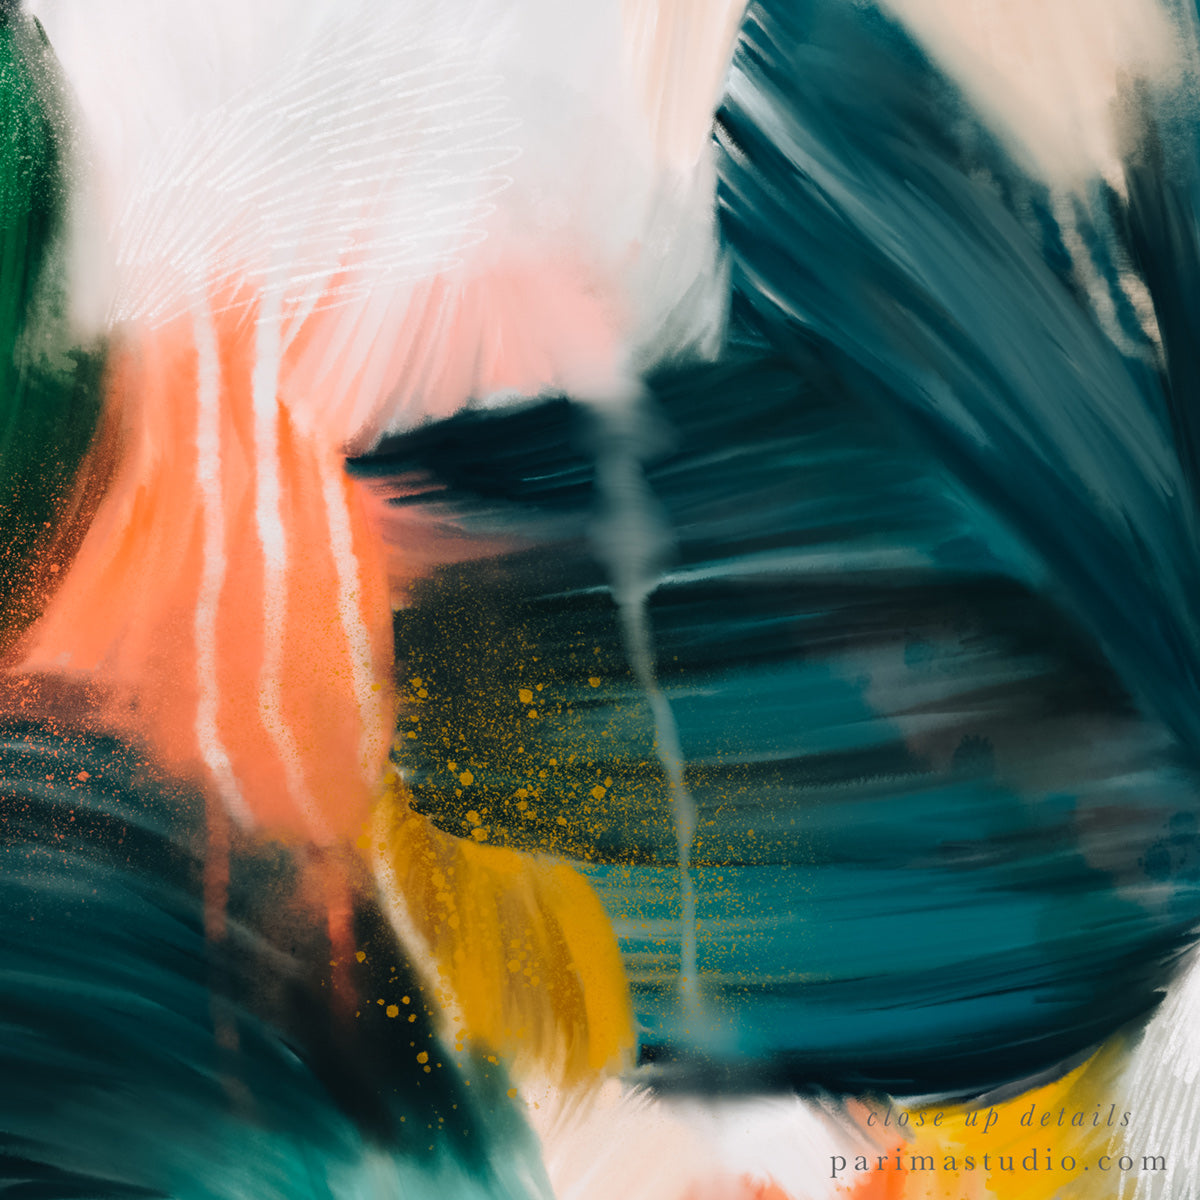 Close up of Estelle, abstract art print by Parima Studio